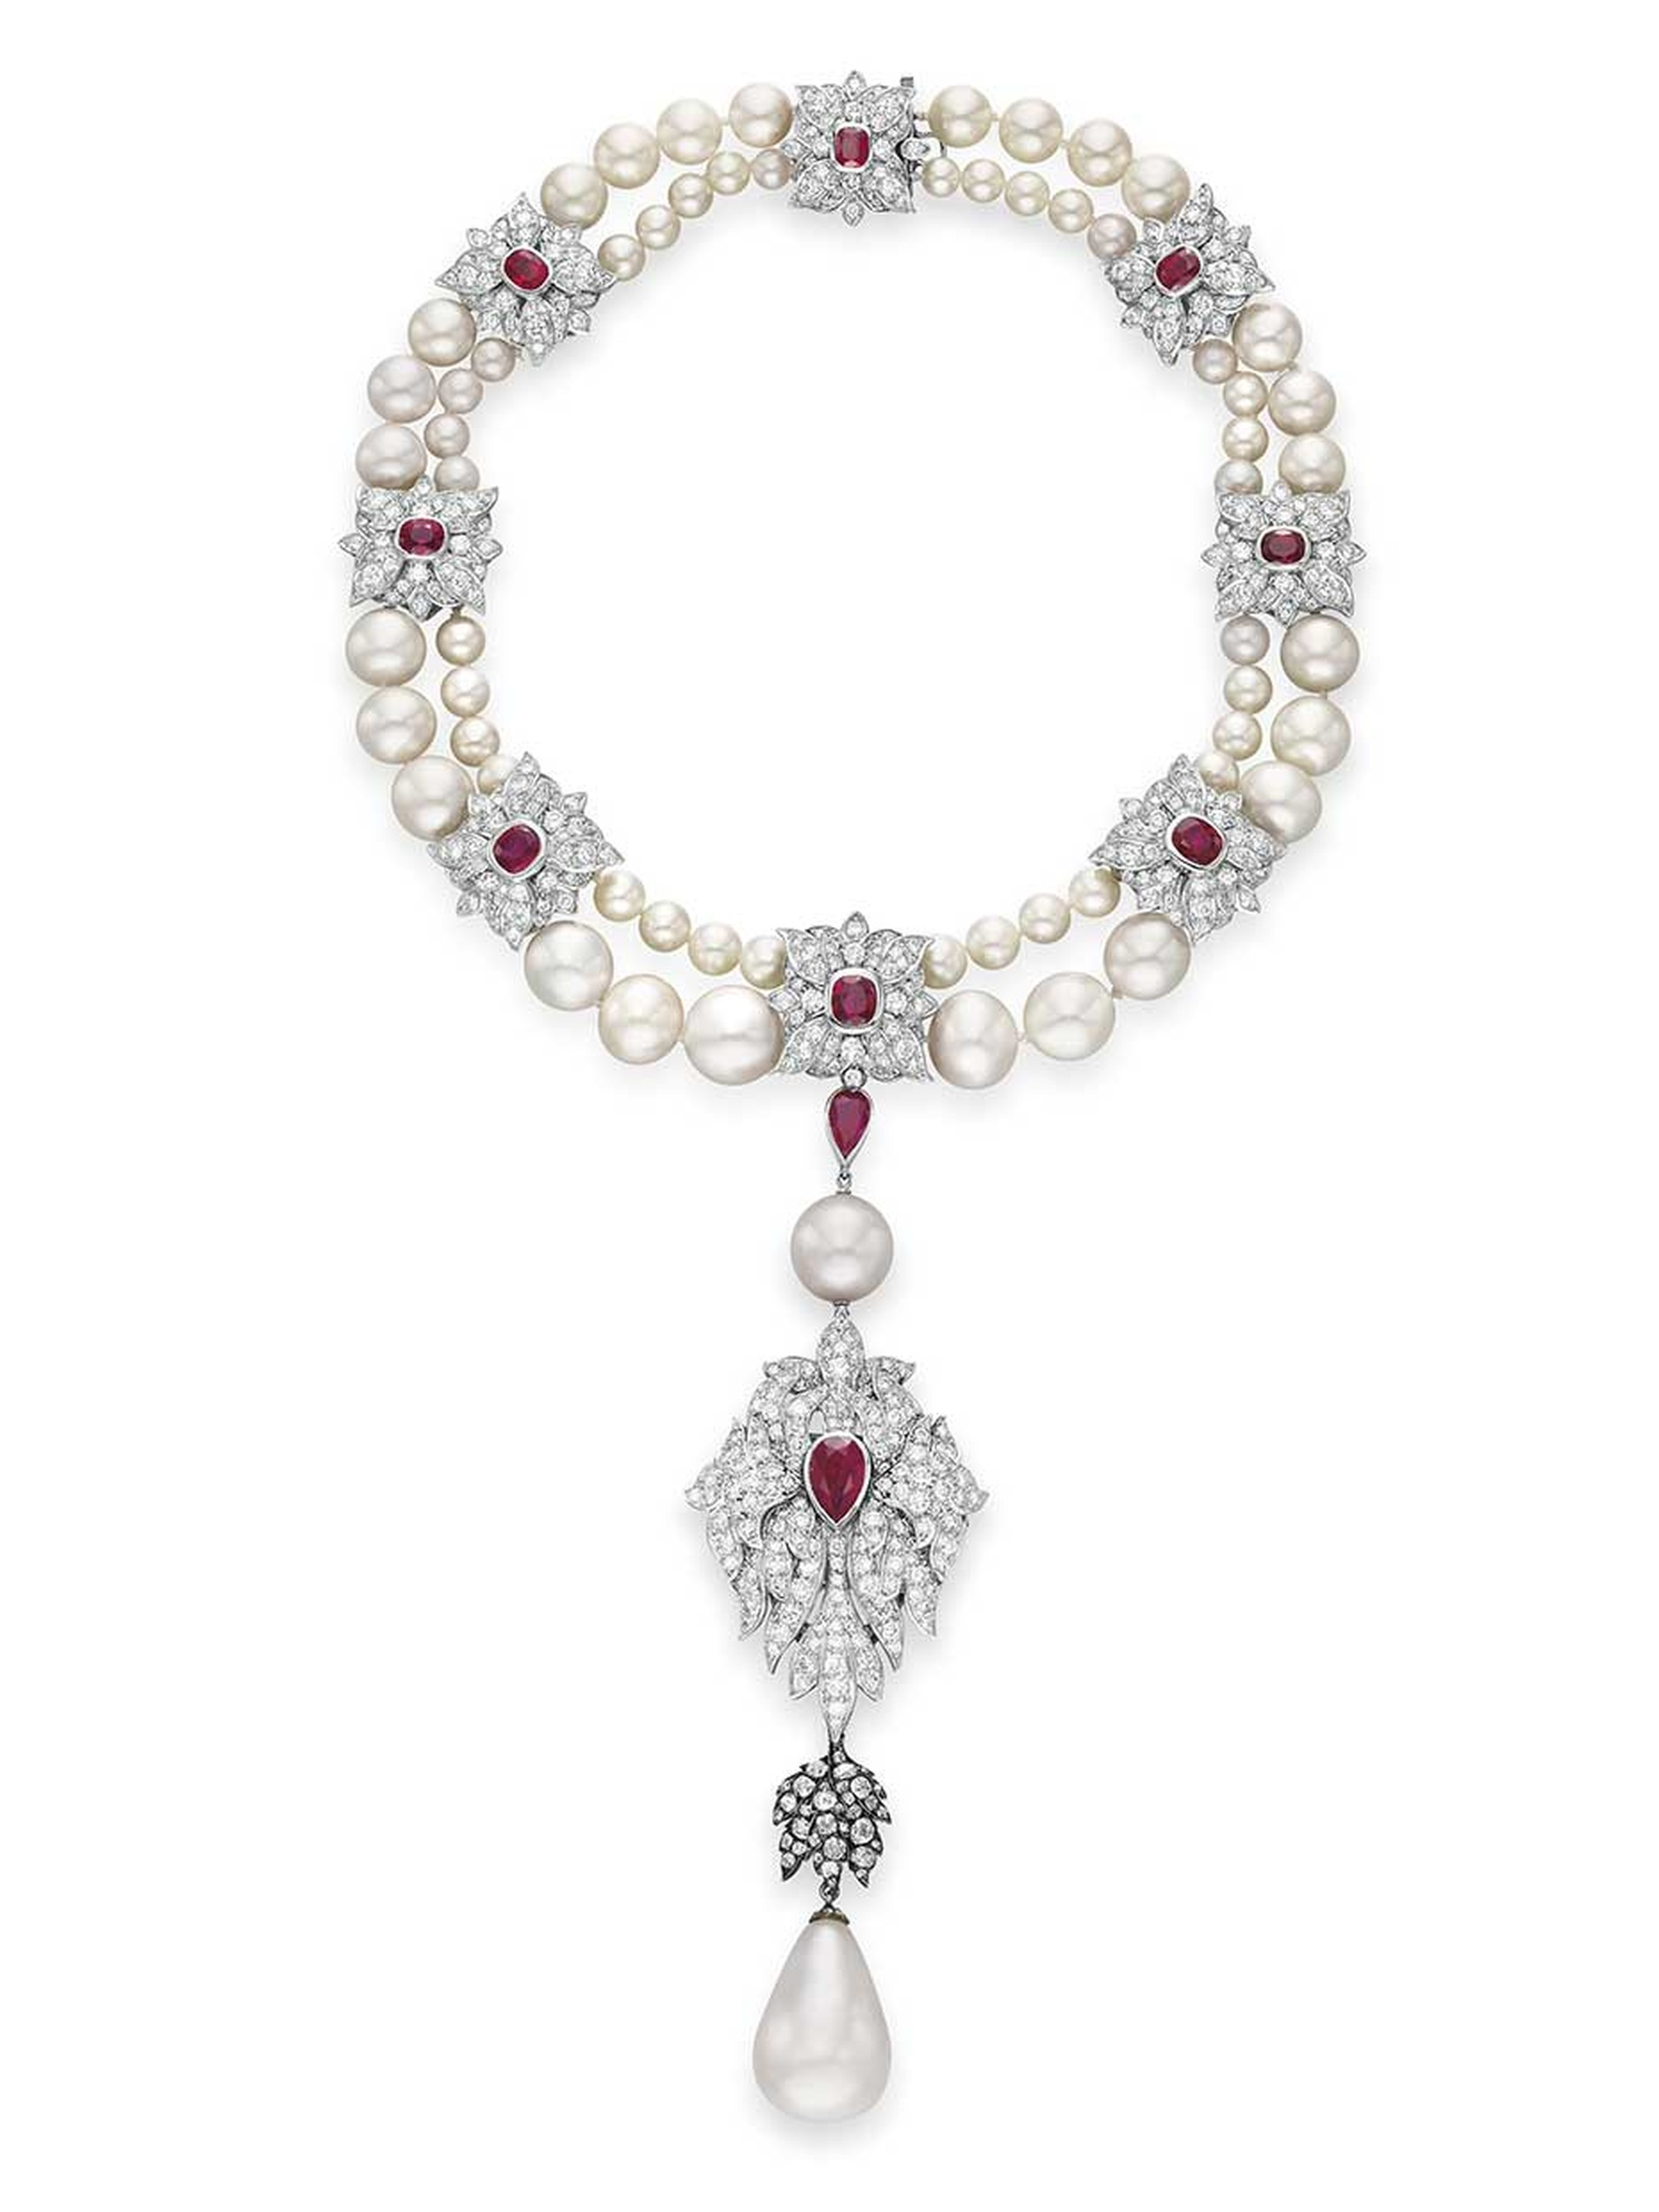 The pearl necklace with rubies and diamonds starring the 16th century pear-shaped La Peregrina pearl, redesigned by Cartier for Elizabeth Taylor. It sold at Christie's sale of Taylor's jewels in 2011 for $11,842,500.